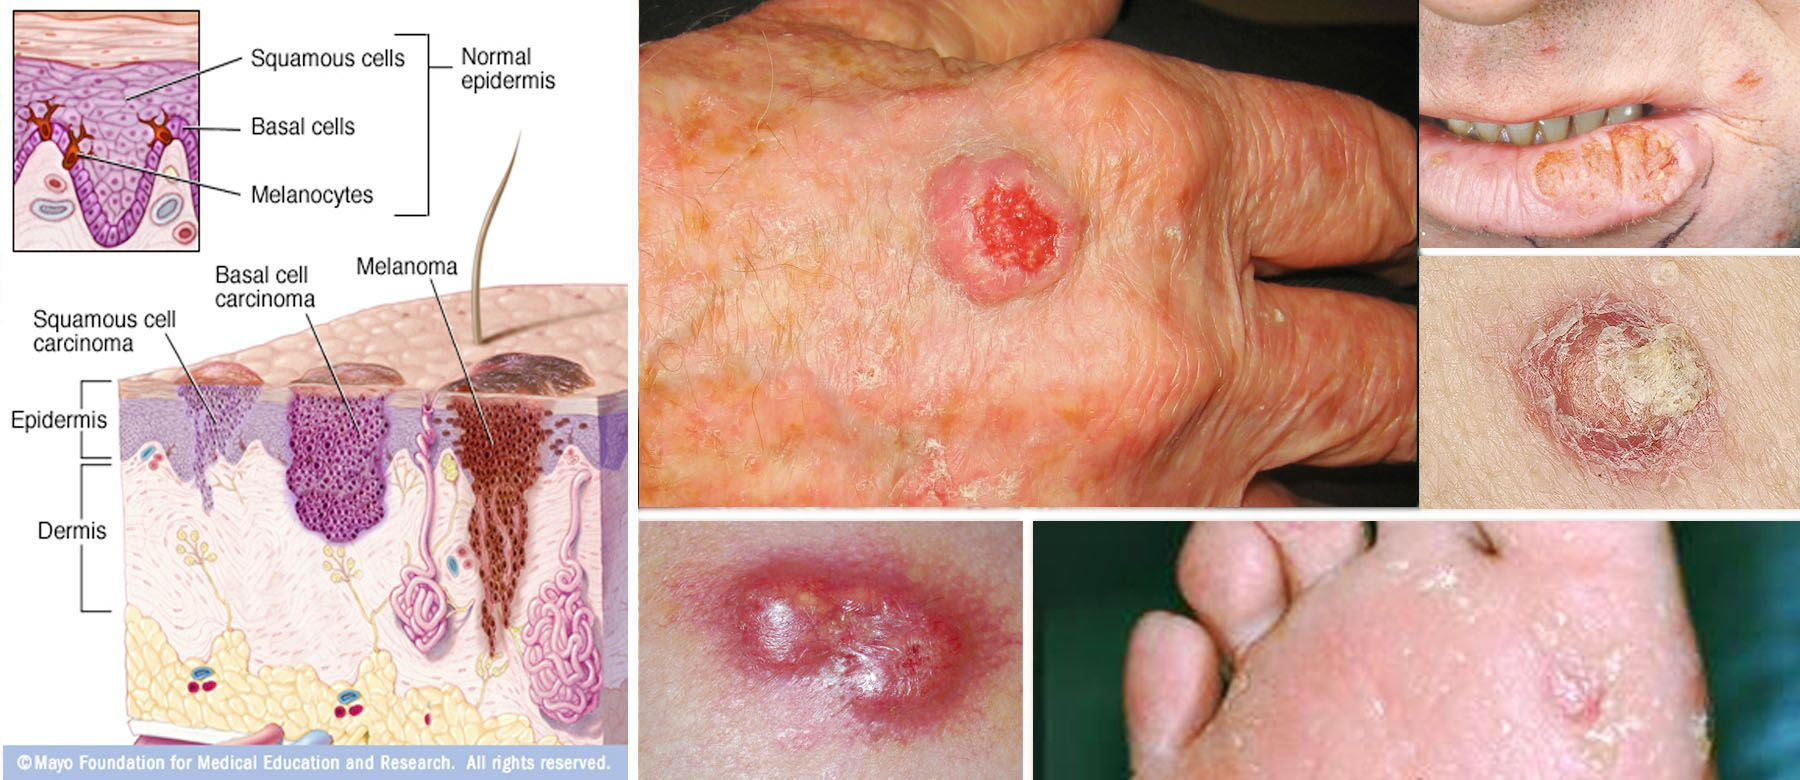 skin cancer – squamous cell carcinoma, Human Body